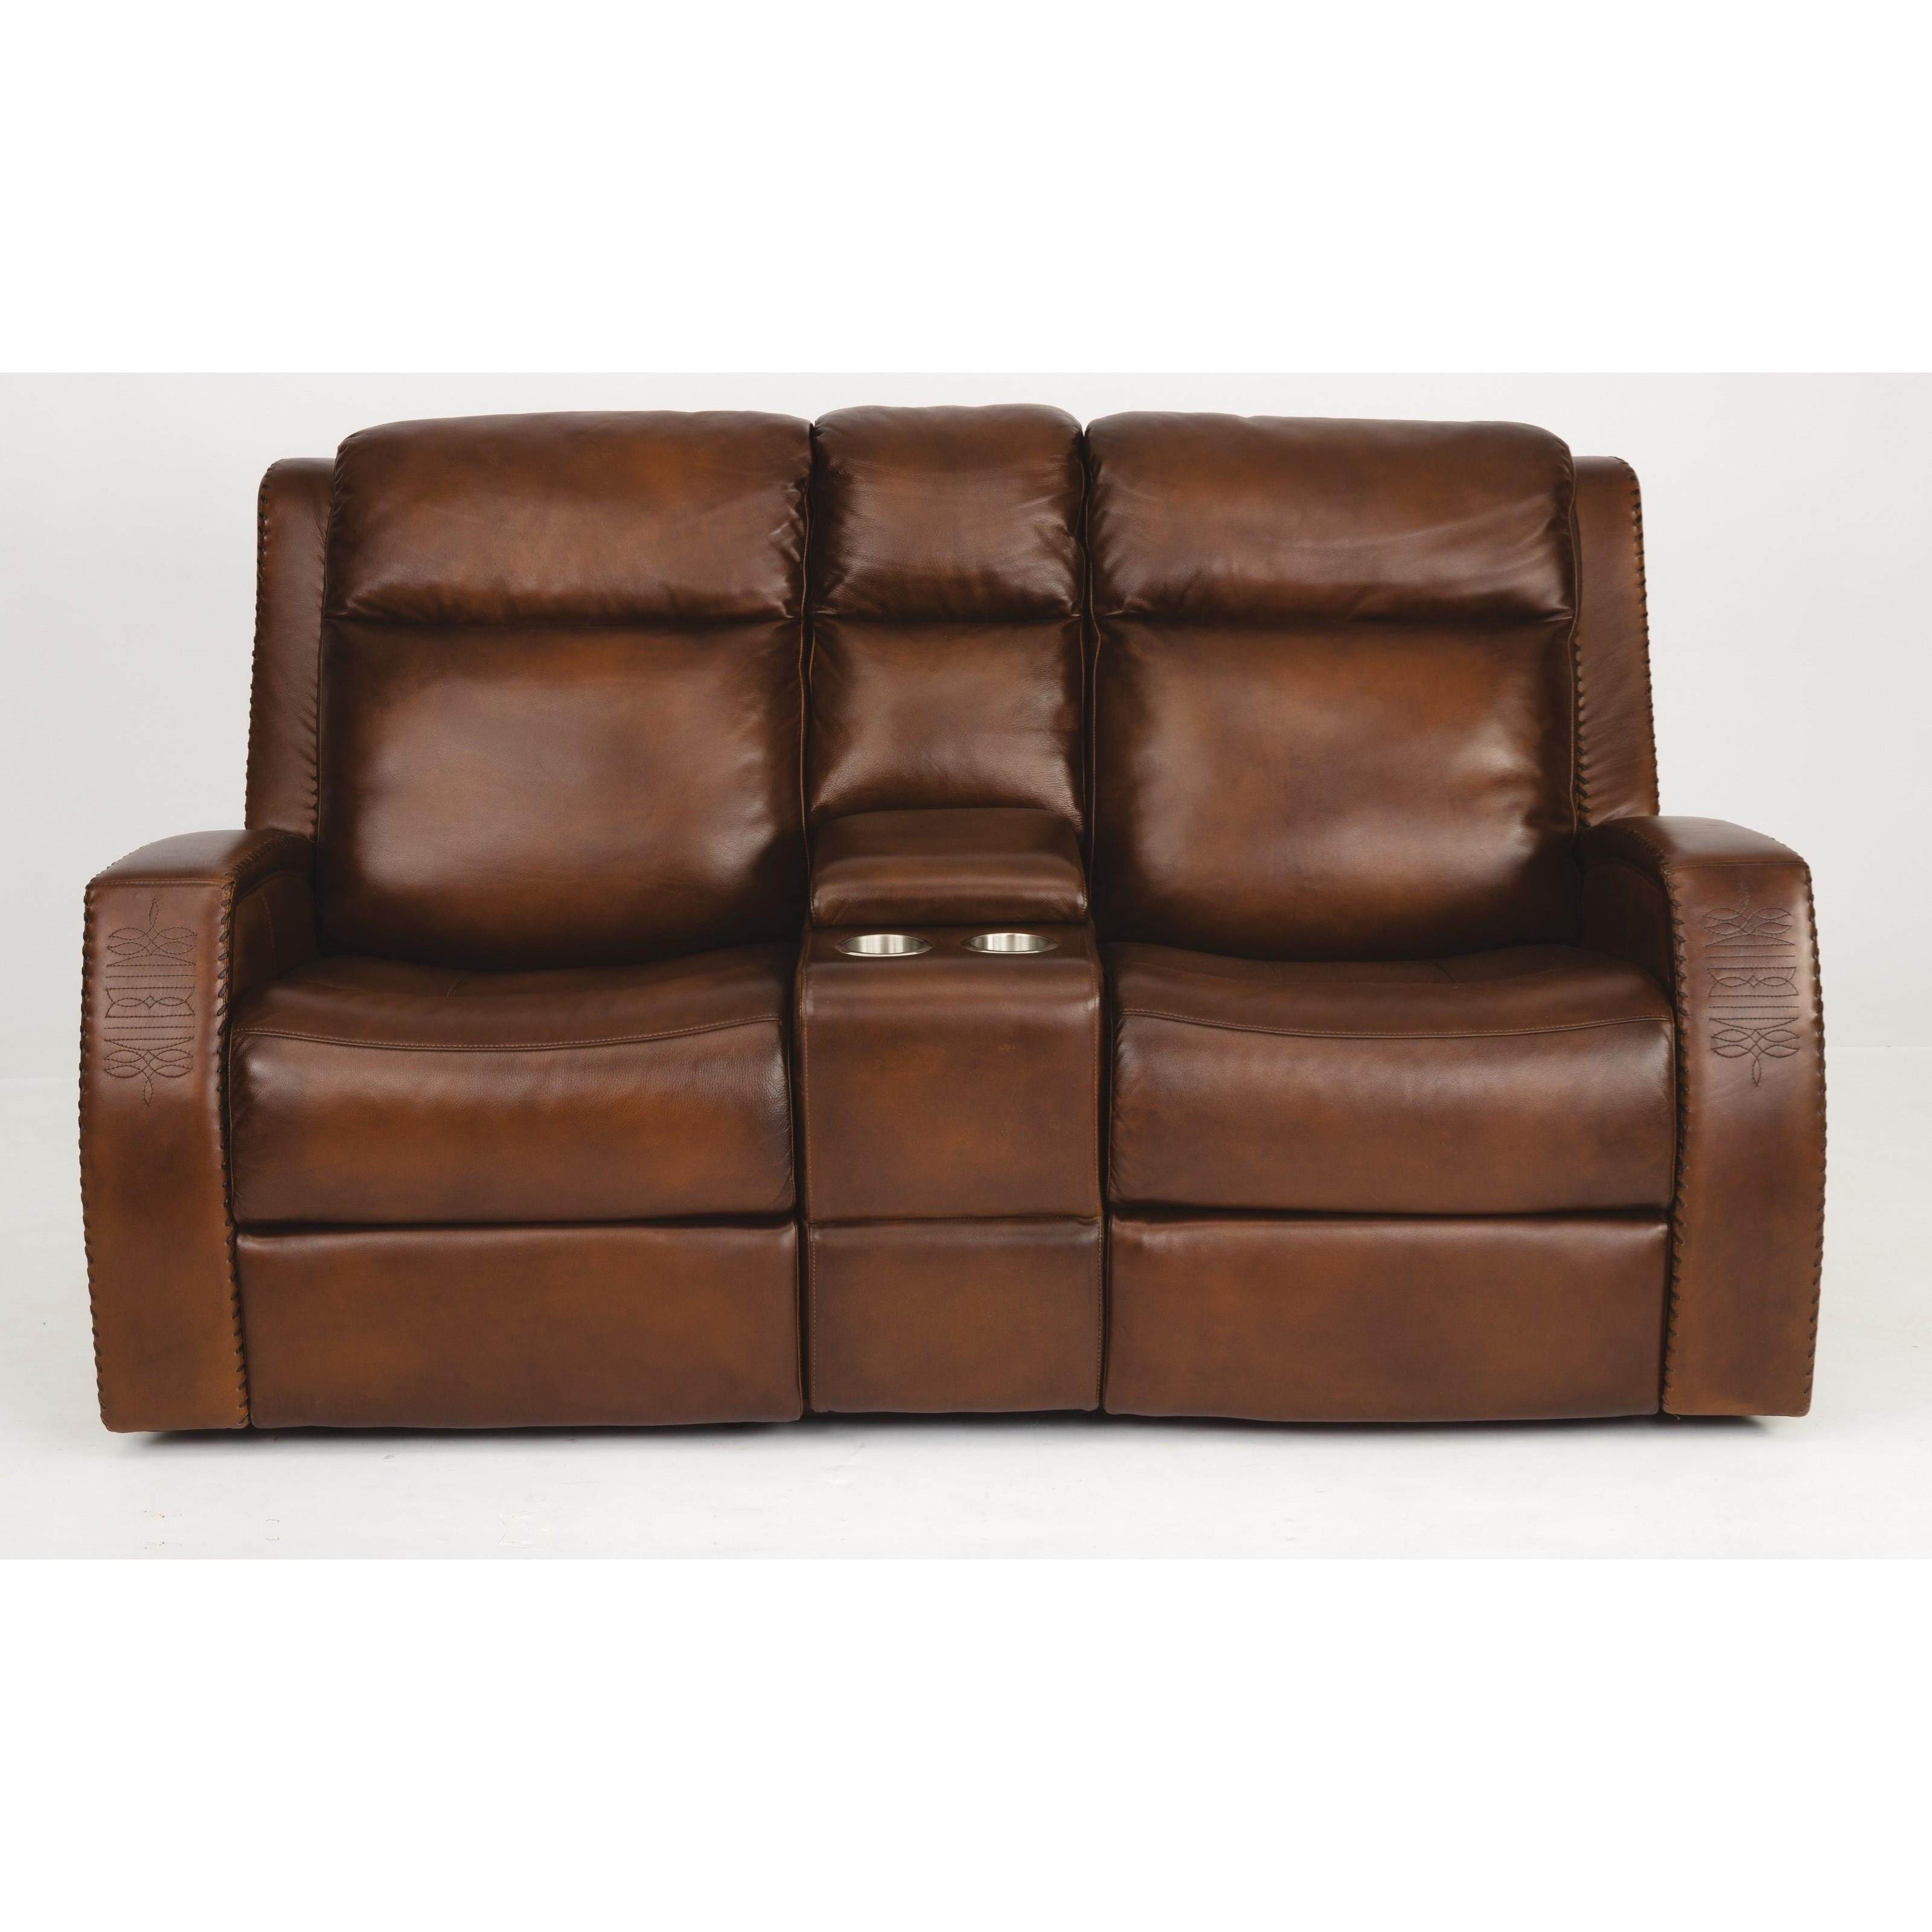 Latitudes - Mustang Power Reclining Console Loveseat & Pwr Head by Flexsteel at Walker's Furniture